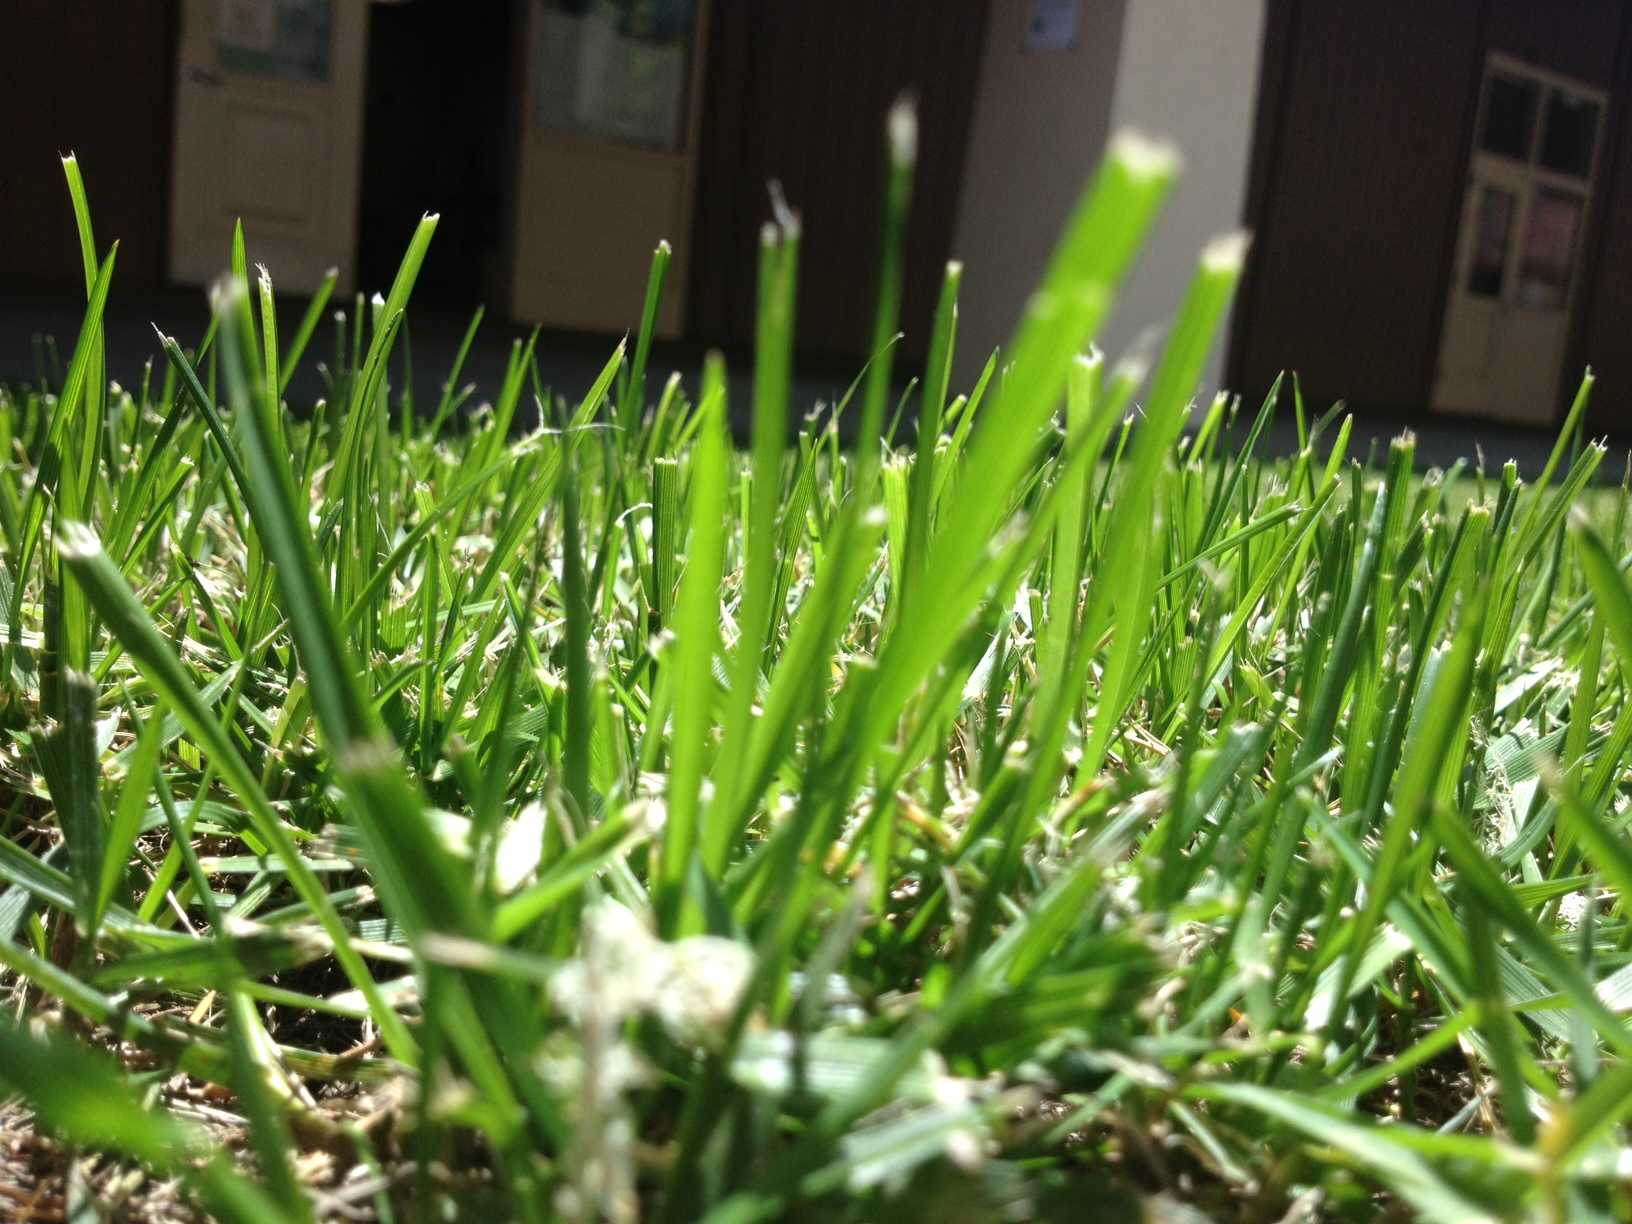 Ornamental uses of water such as lawns will be most affected by Palo Alto's water restrictions. These restrictions come in response the California's ongoing drought, with 2014 being the warmest and third driest year on record in California, according to California Water Science Center.